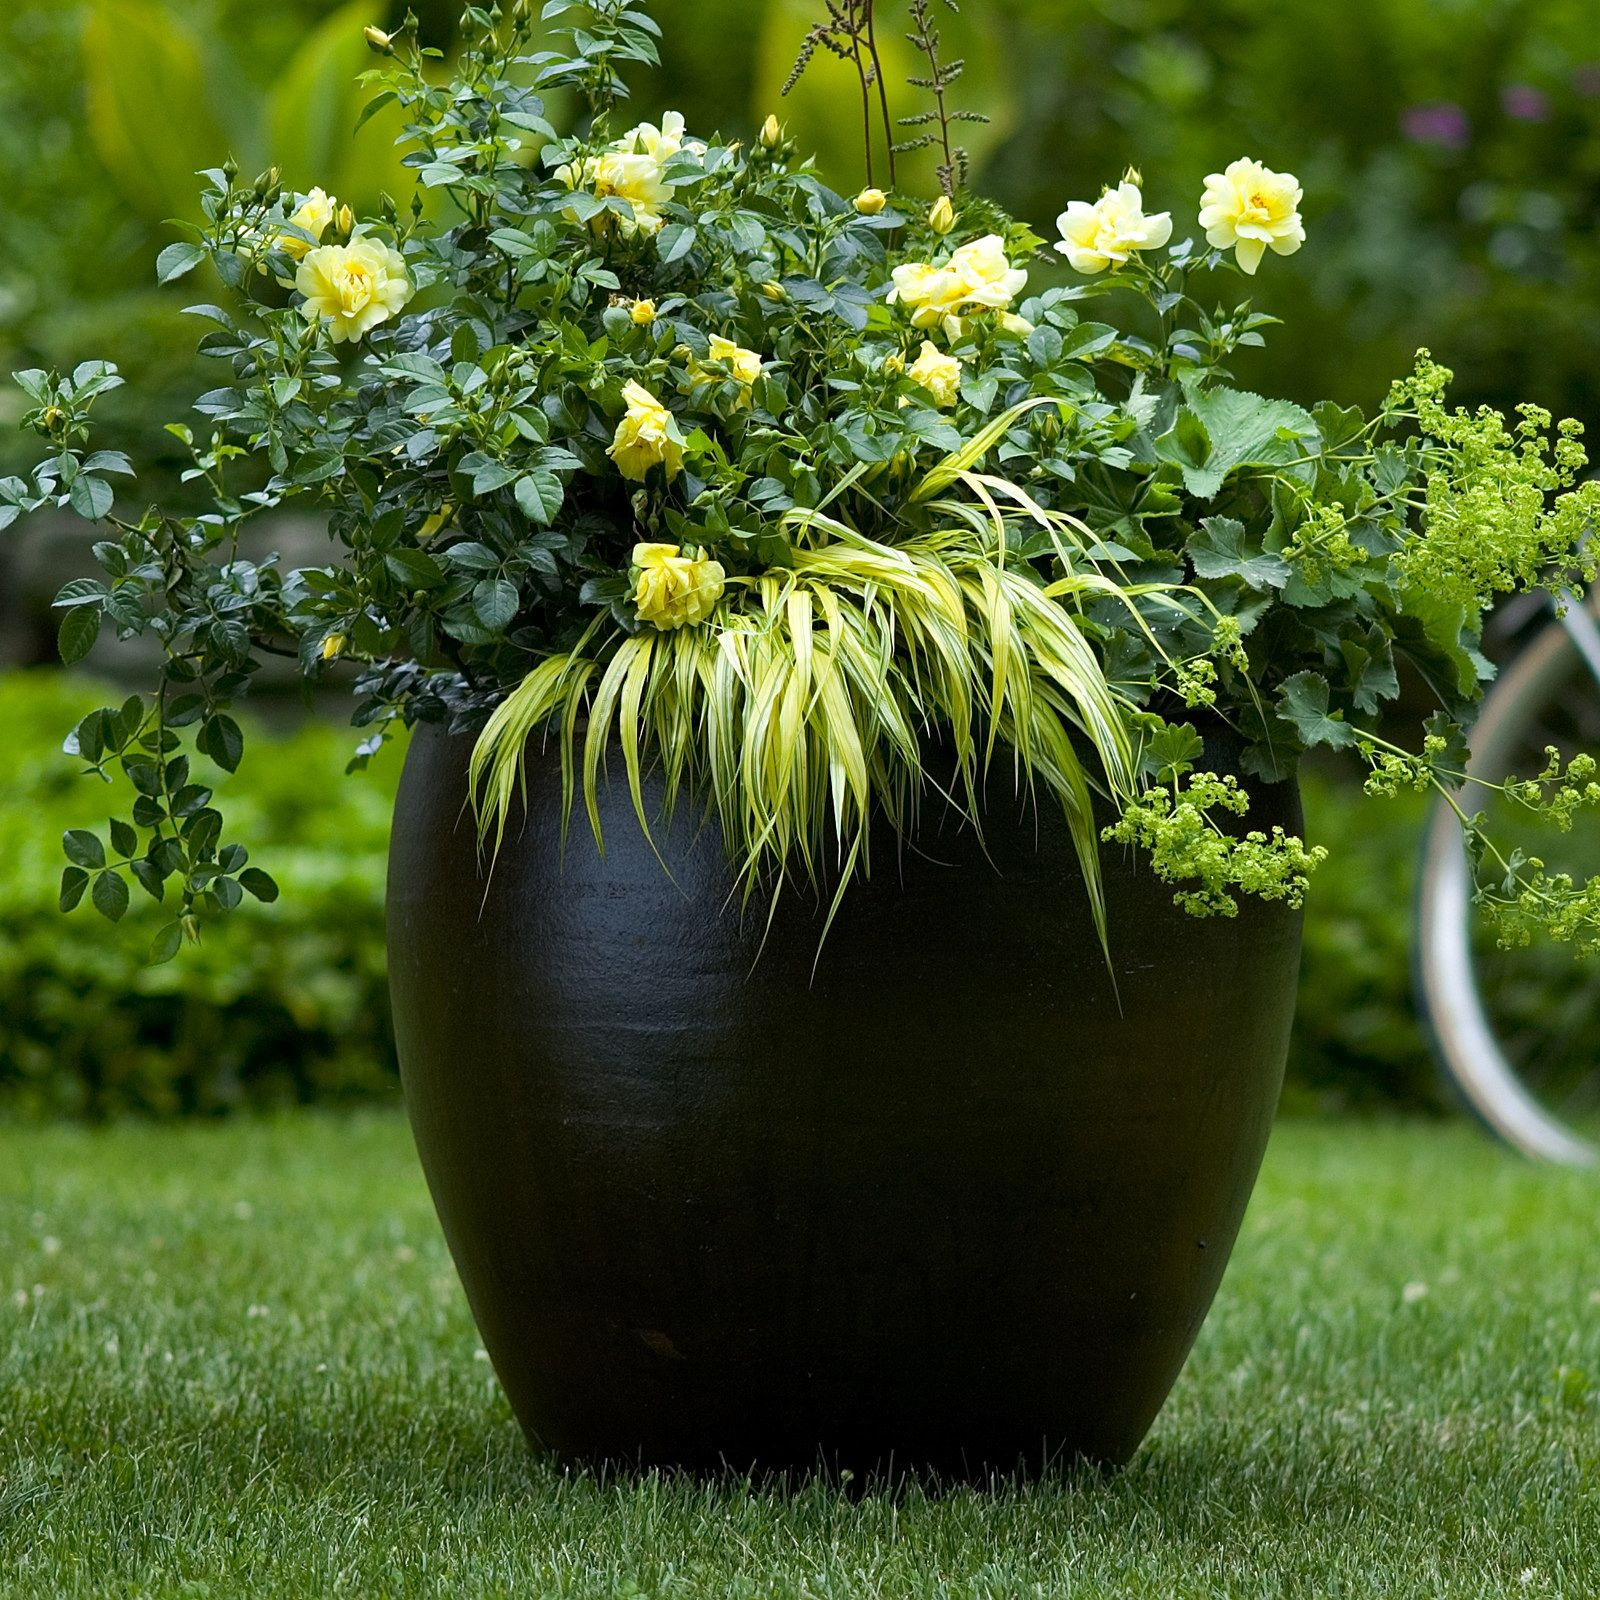 Flower Carpet Yellow Hakonechloa Ladys Mantle In Container